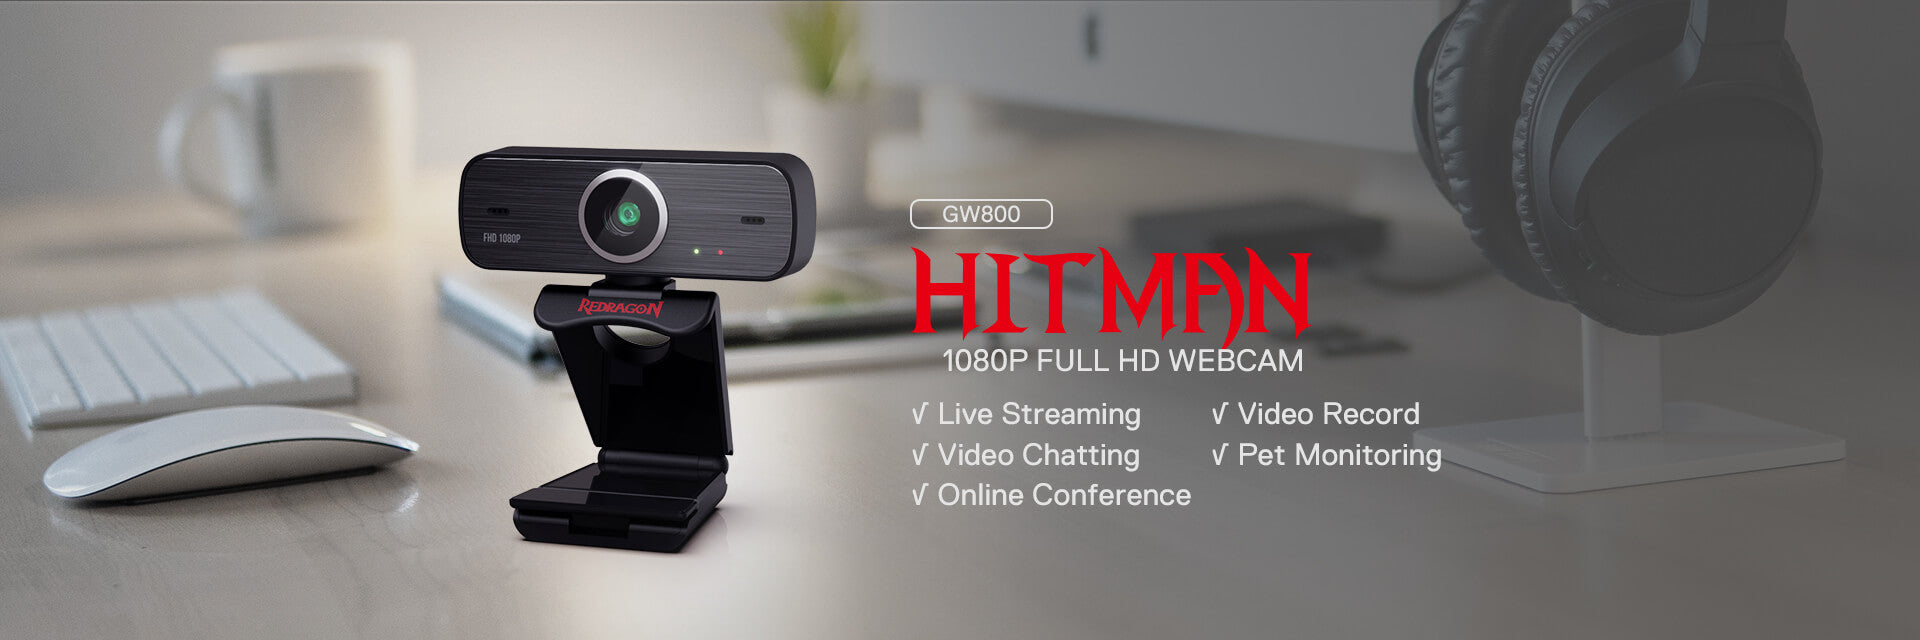 redragon 1080p webcam